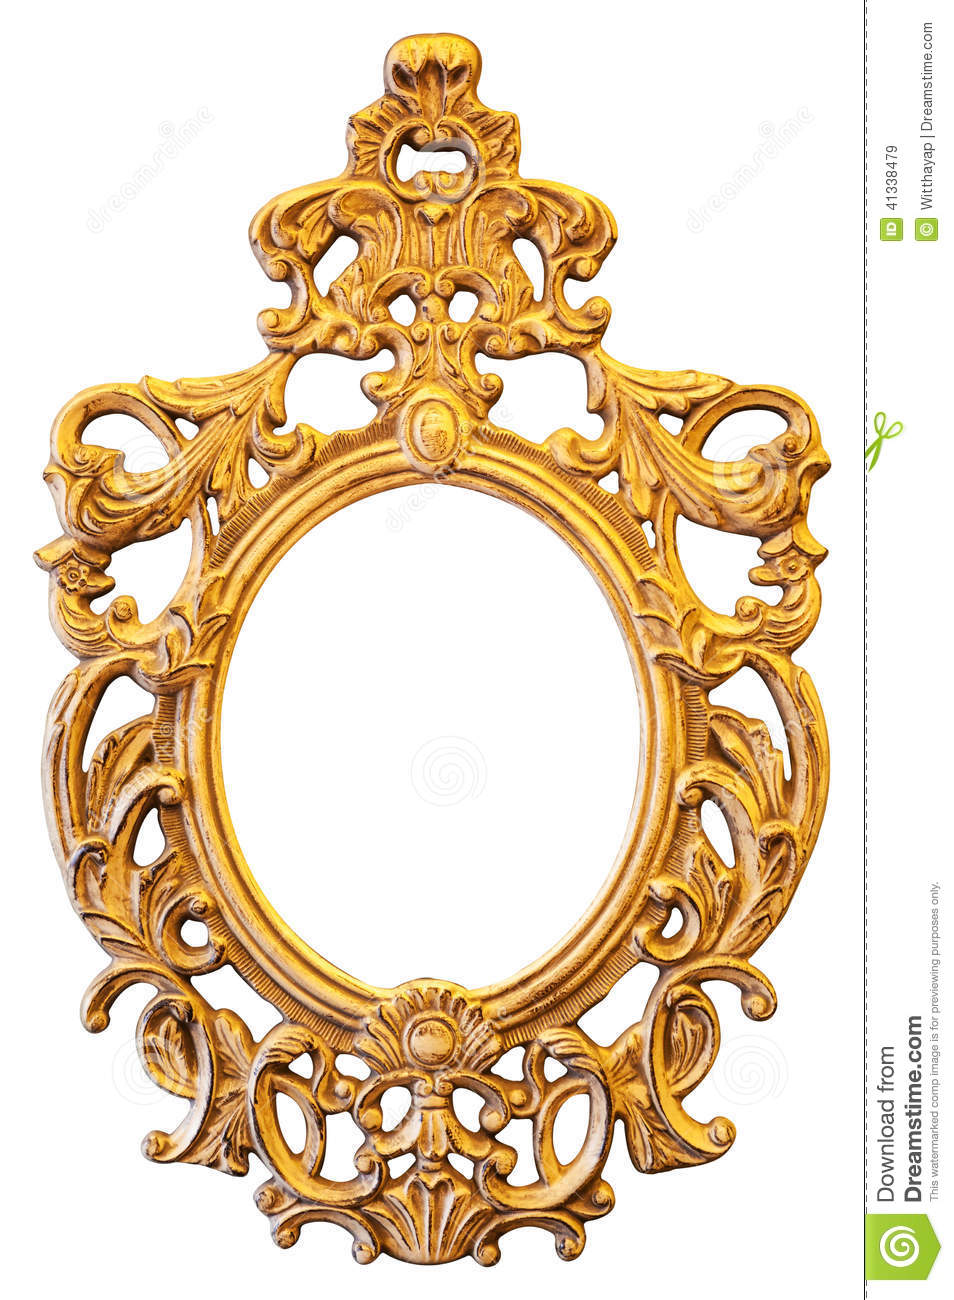 Gold Ornate Oval Frame Stock Photo Image 41338479